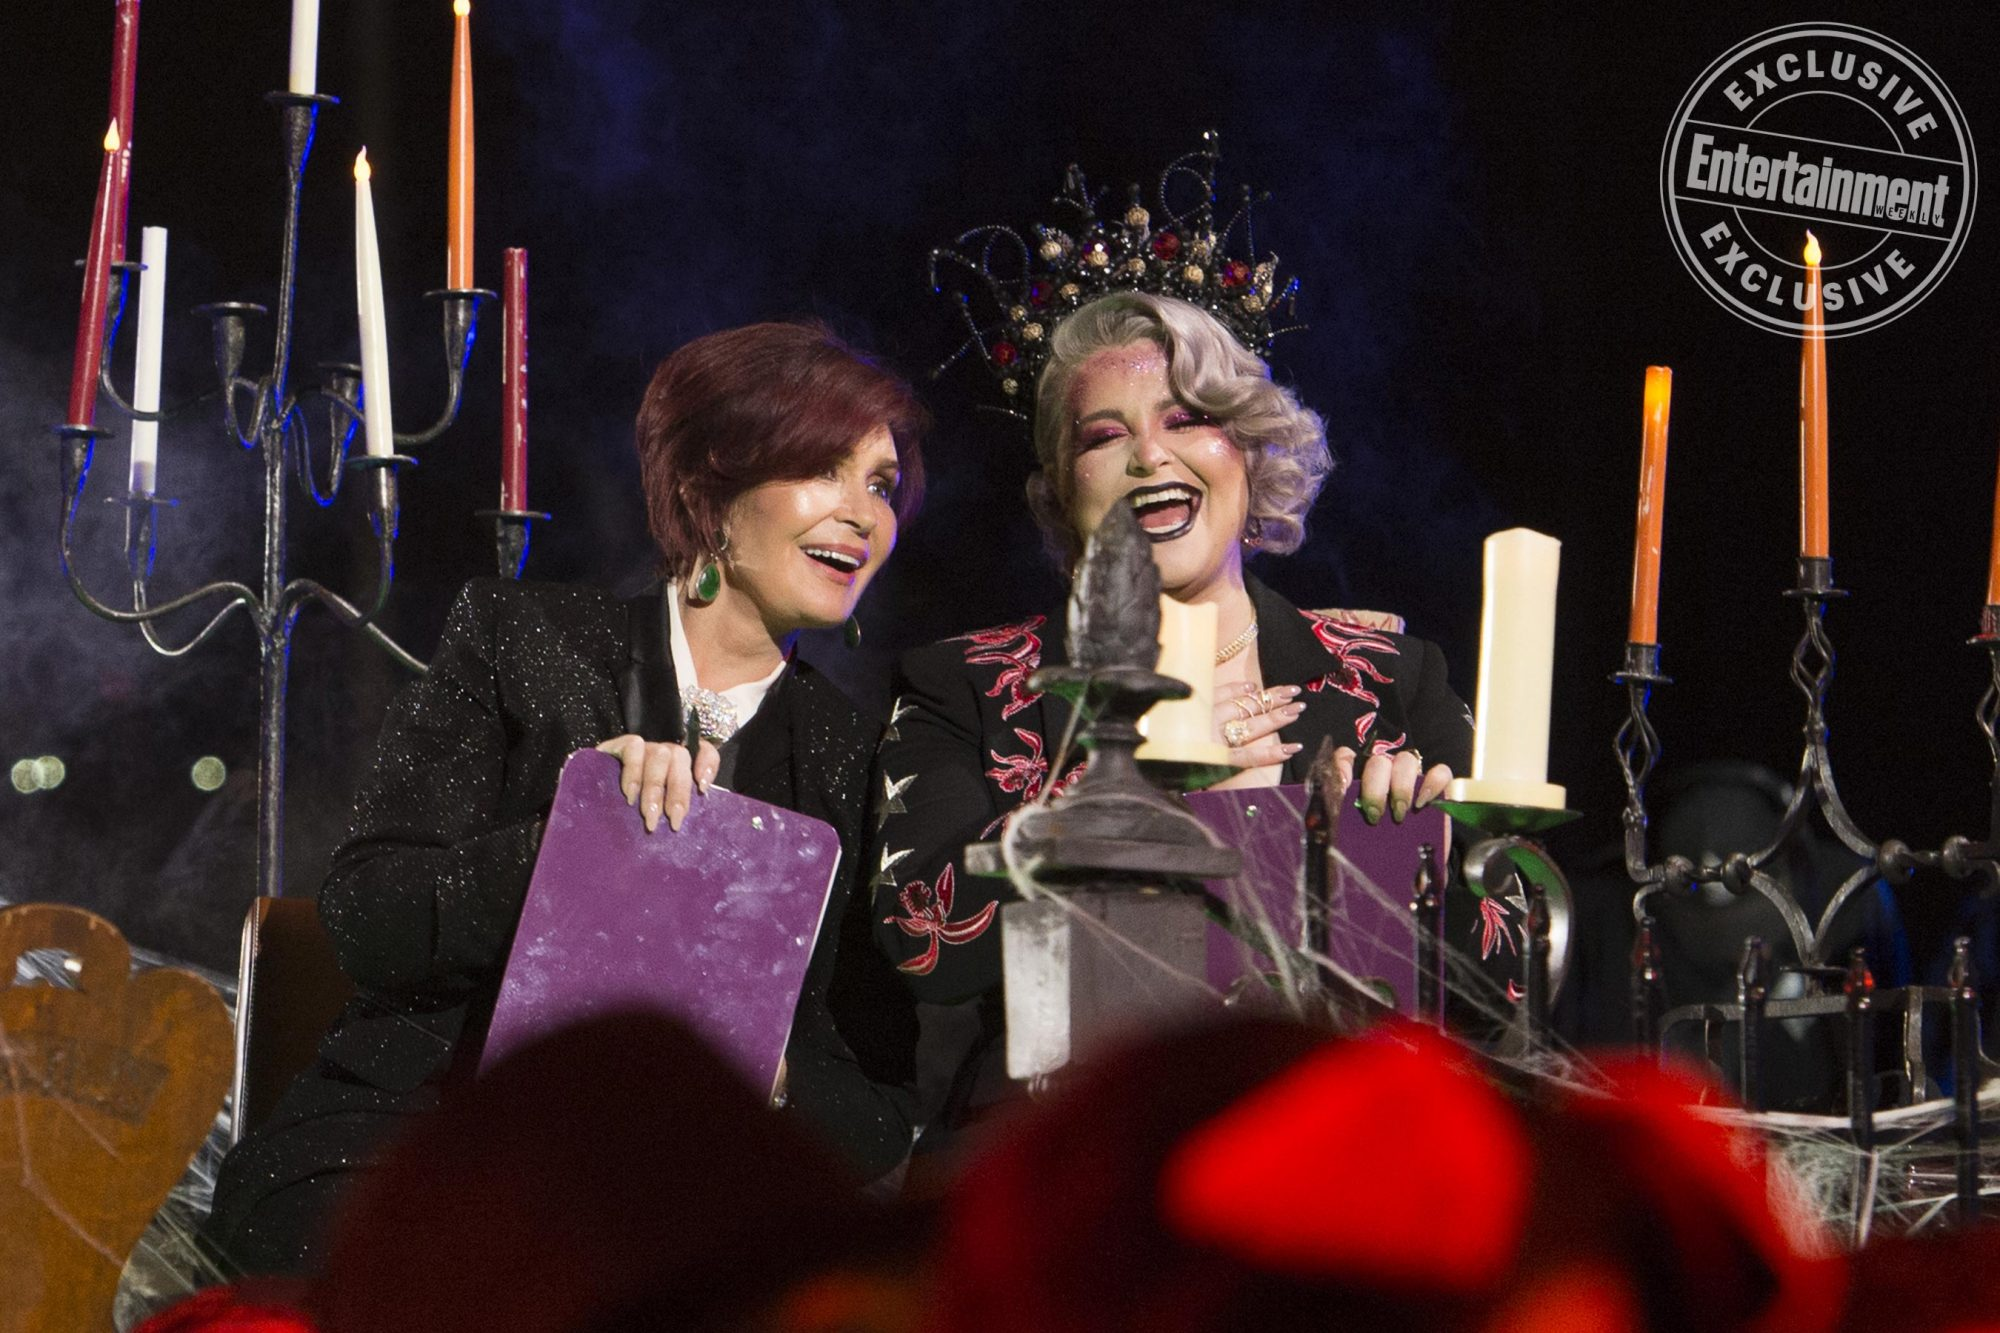 Sharon and Kelly Osbourne are judging you...